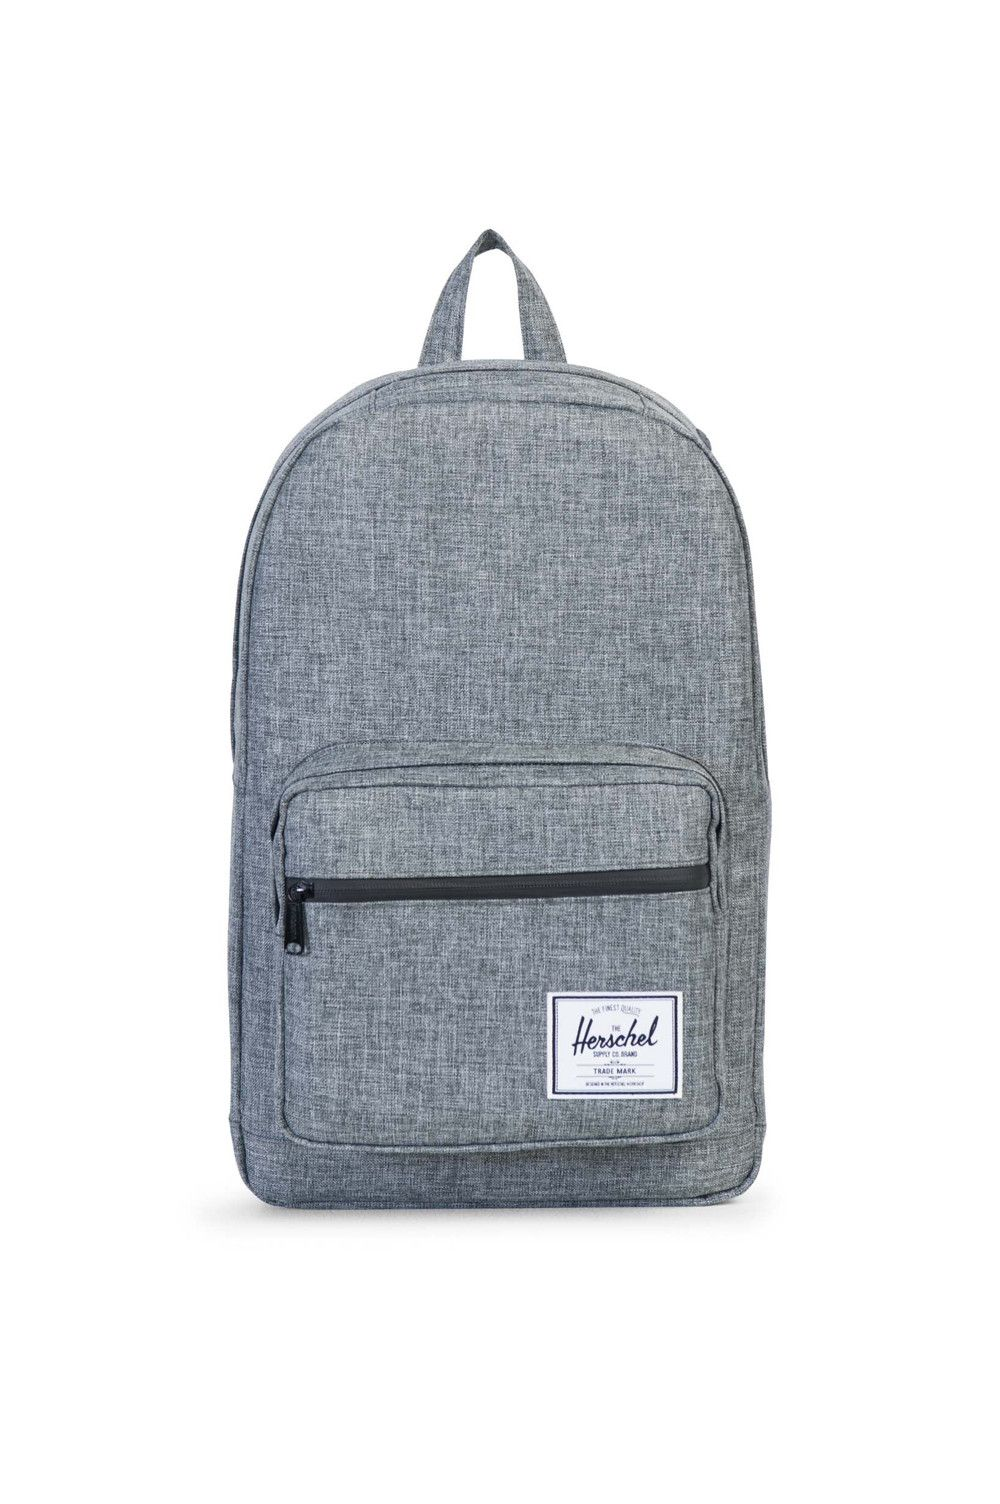 b09d19211c5 The Herschel Pop Quiz backpack will keep you organized at school or work  with a wide range of versatile pockets and organizers.